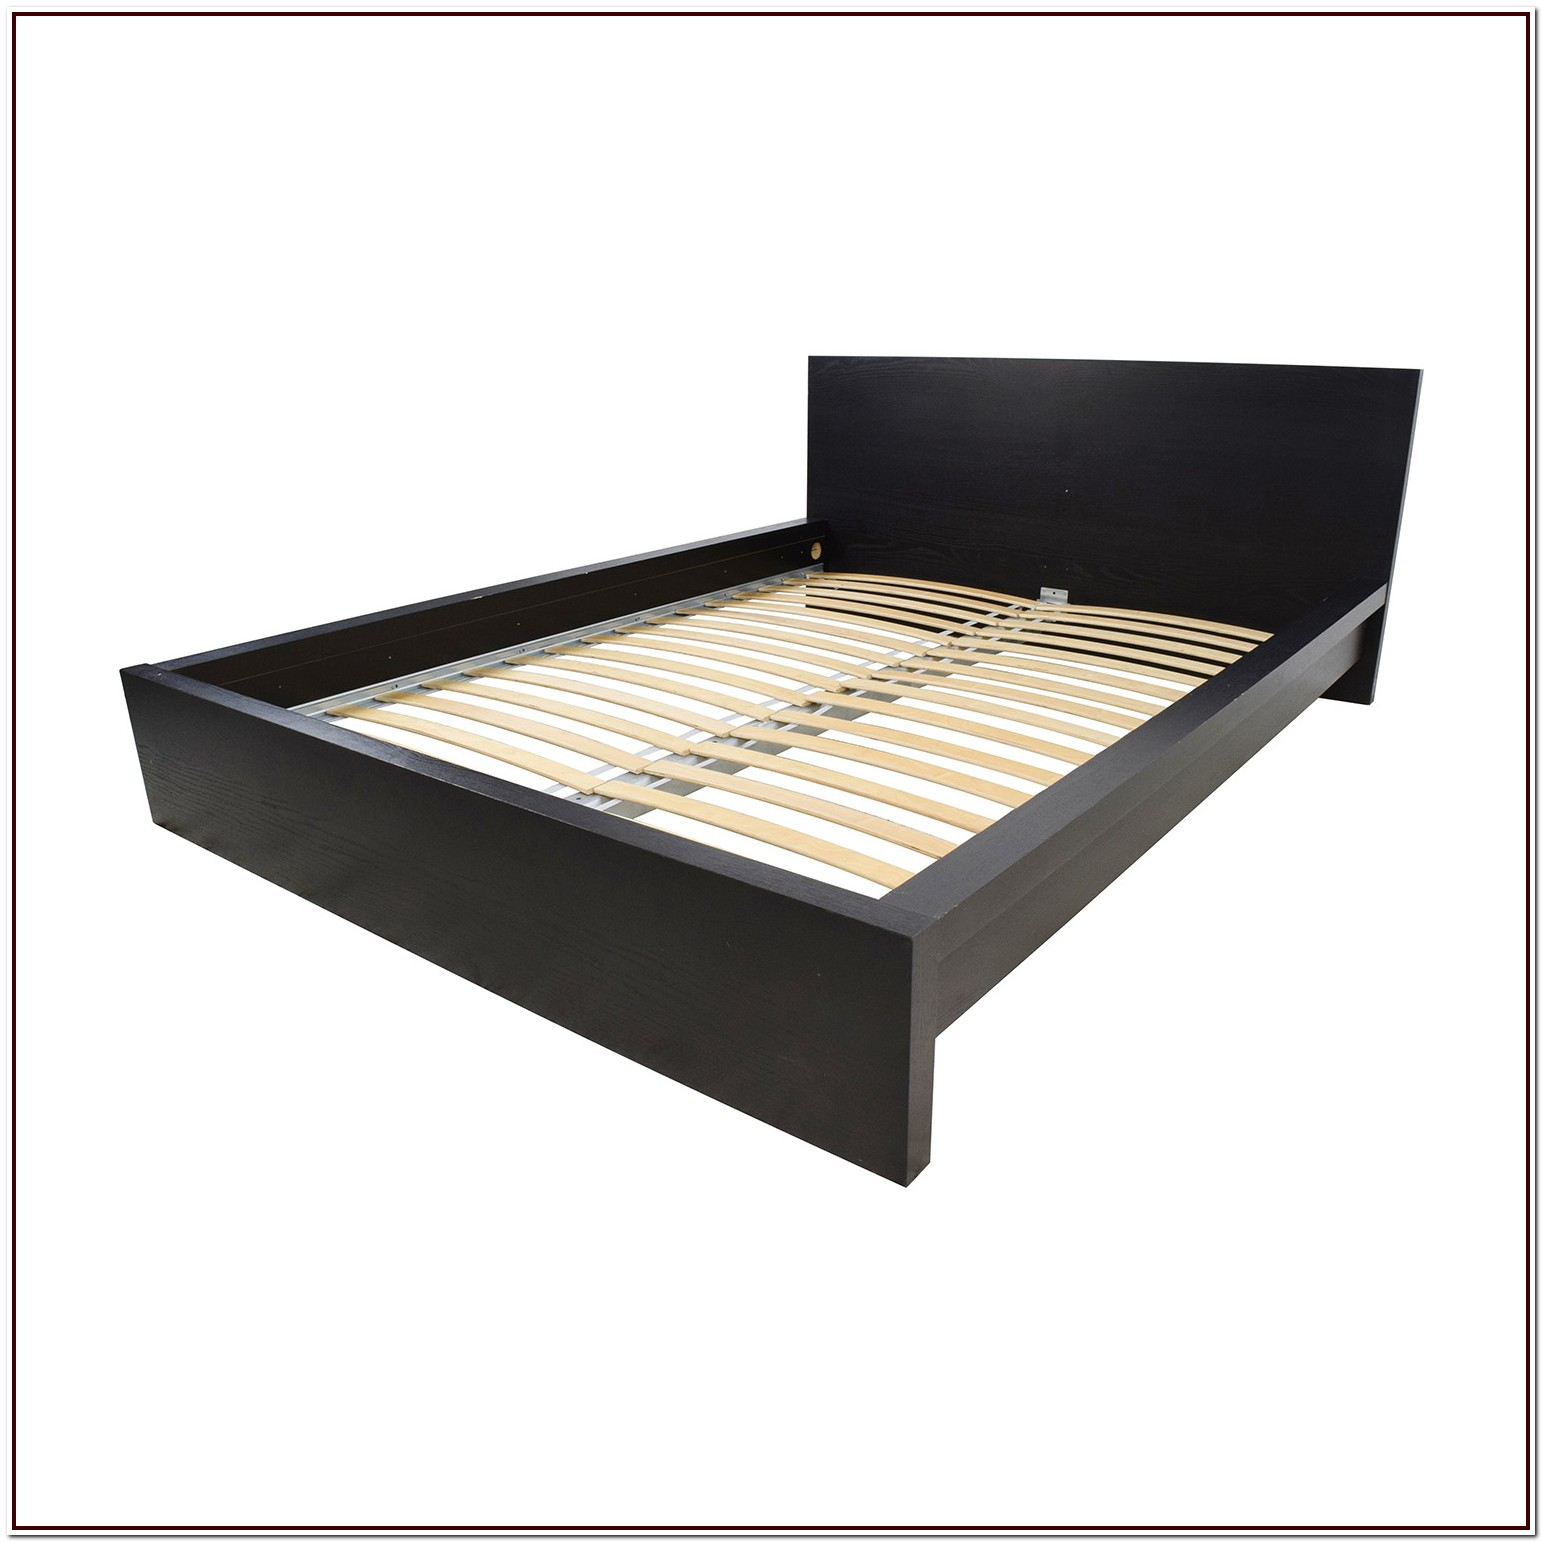 Ikea Malm Queen Size Bed Frame Dimensions